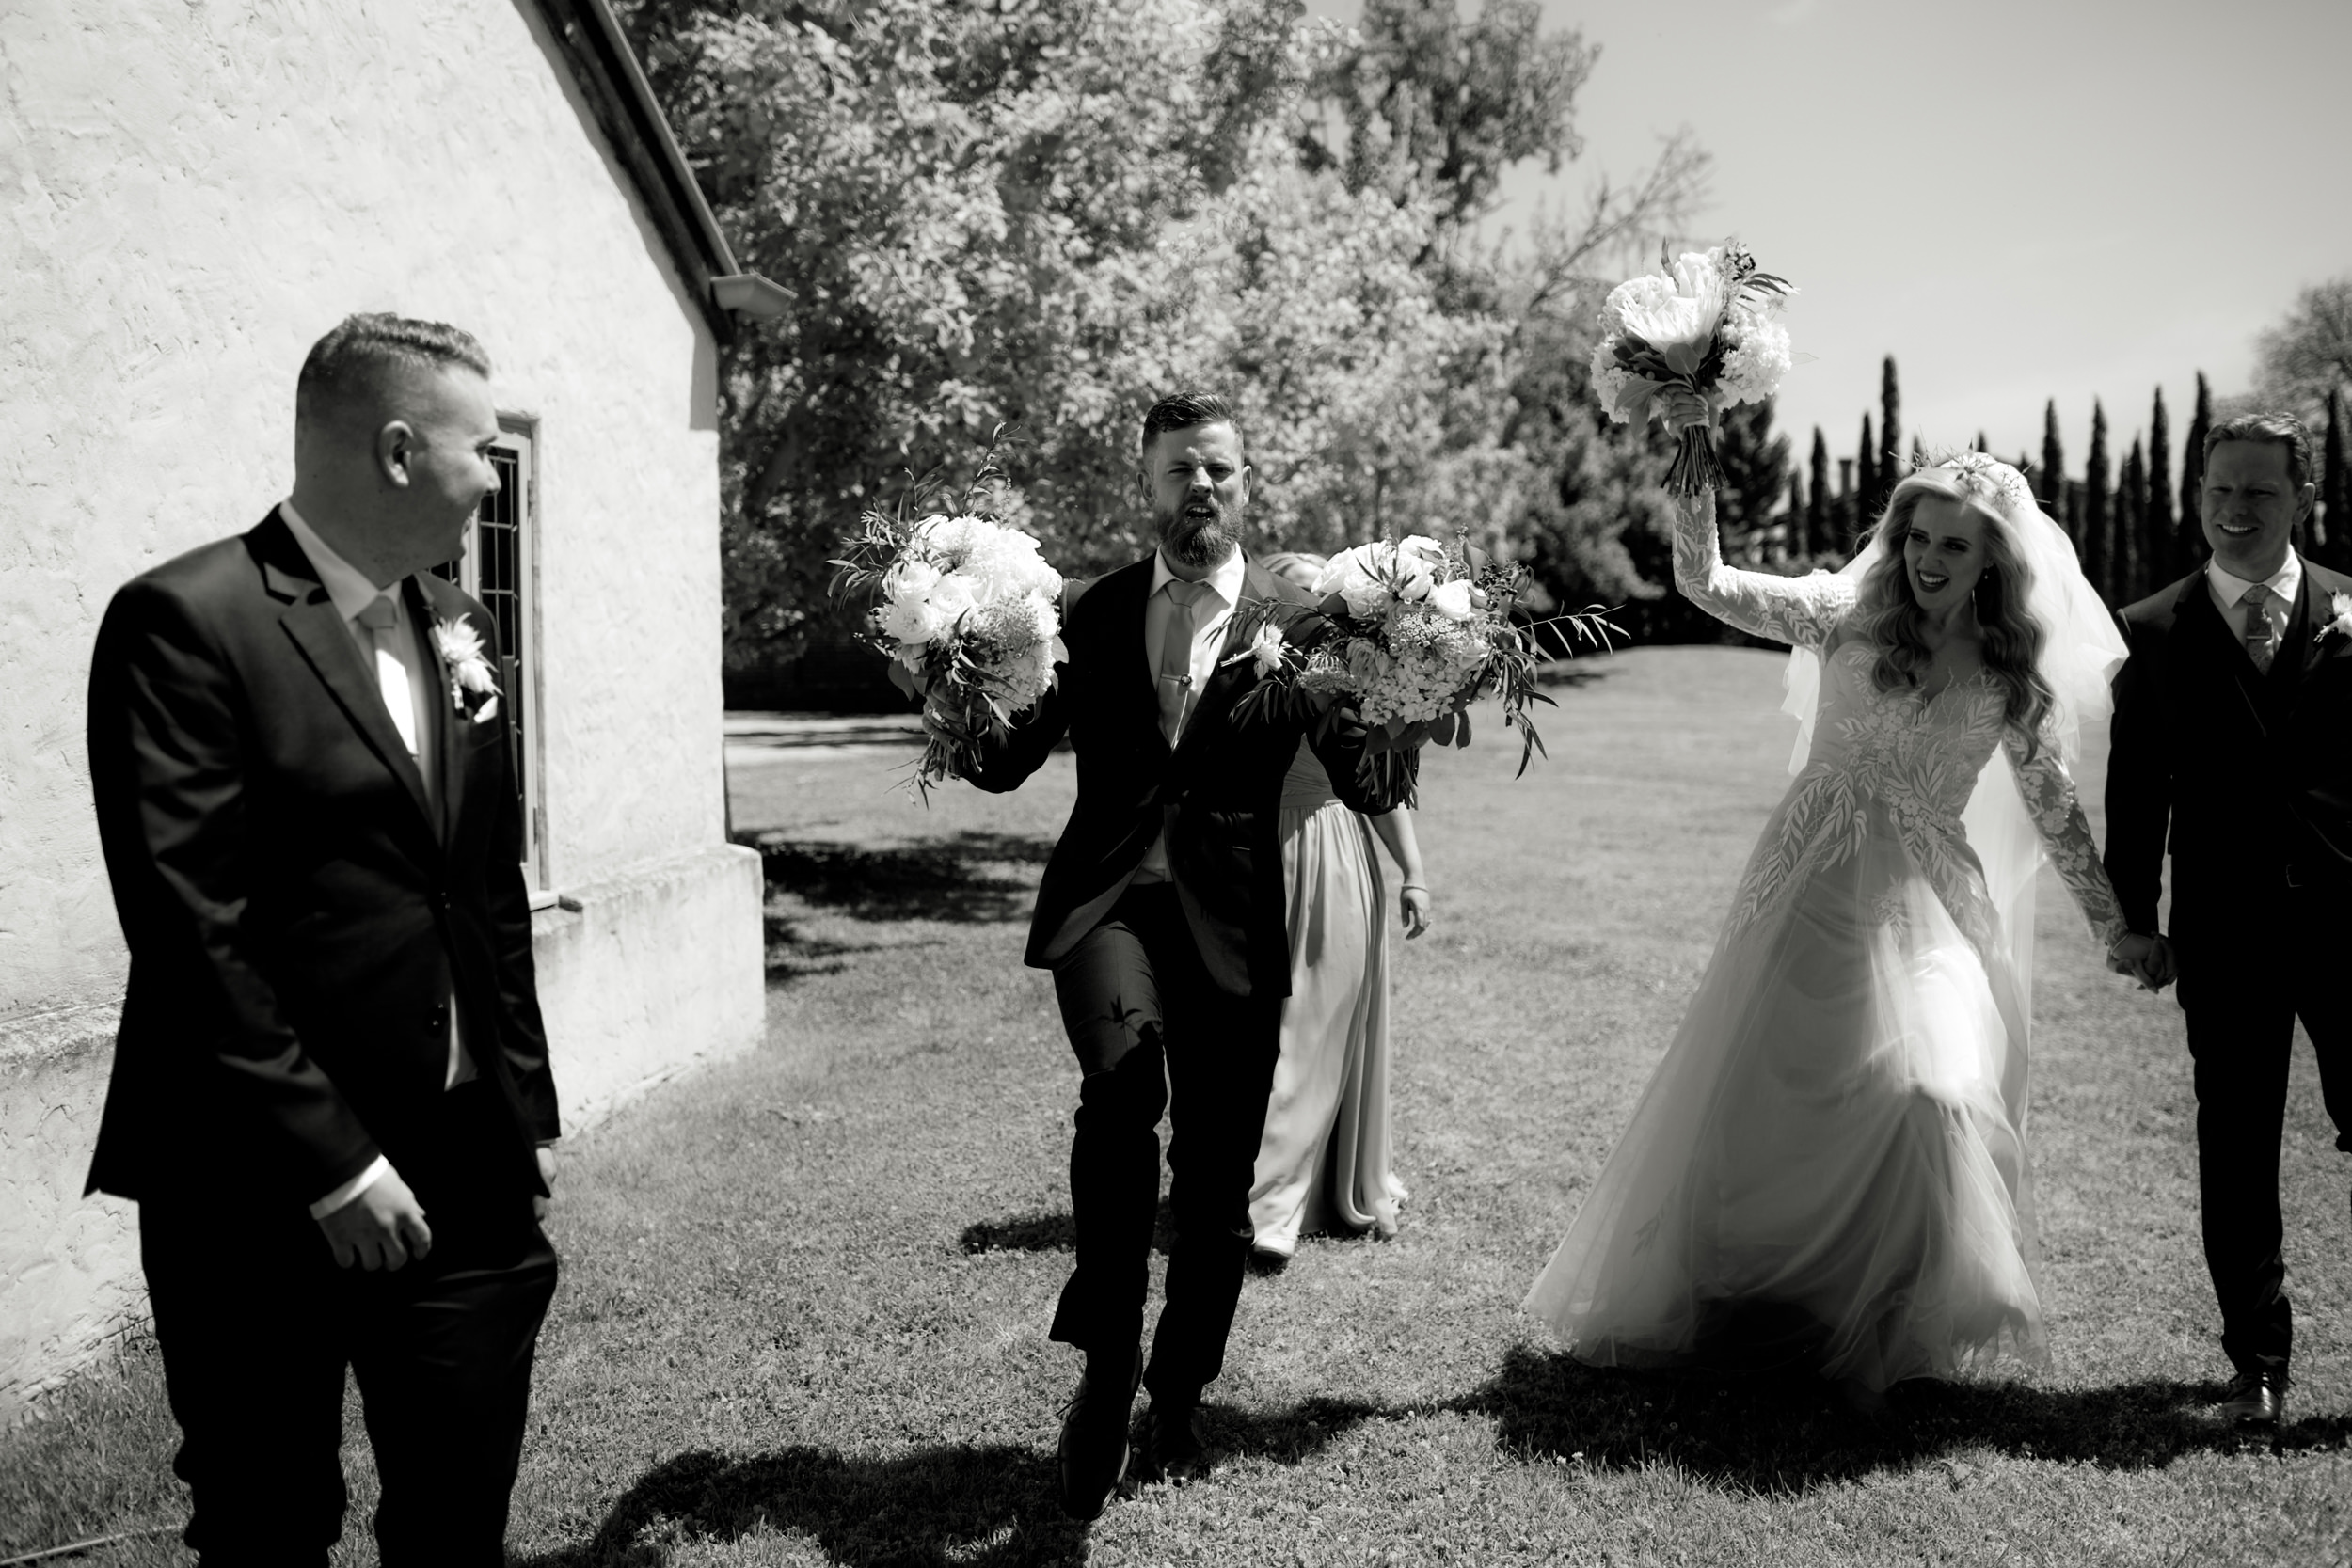 I-Got-You-Babe-&.Co.-Stones-of-the-Yarra-Valley-Wedding-Beverly-Ross0115.JPG